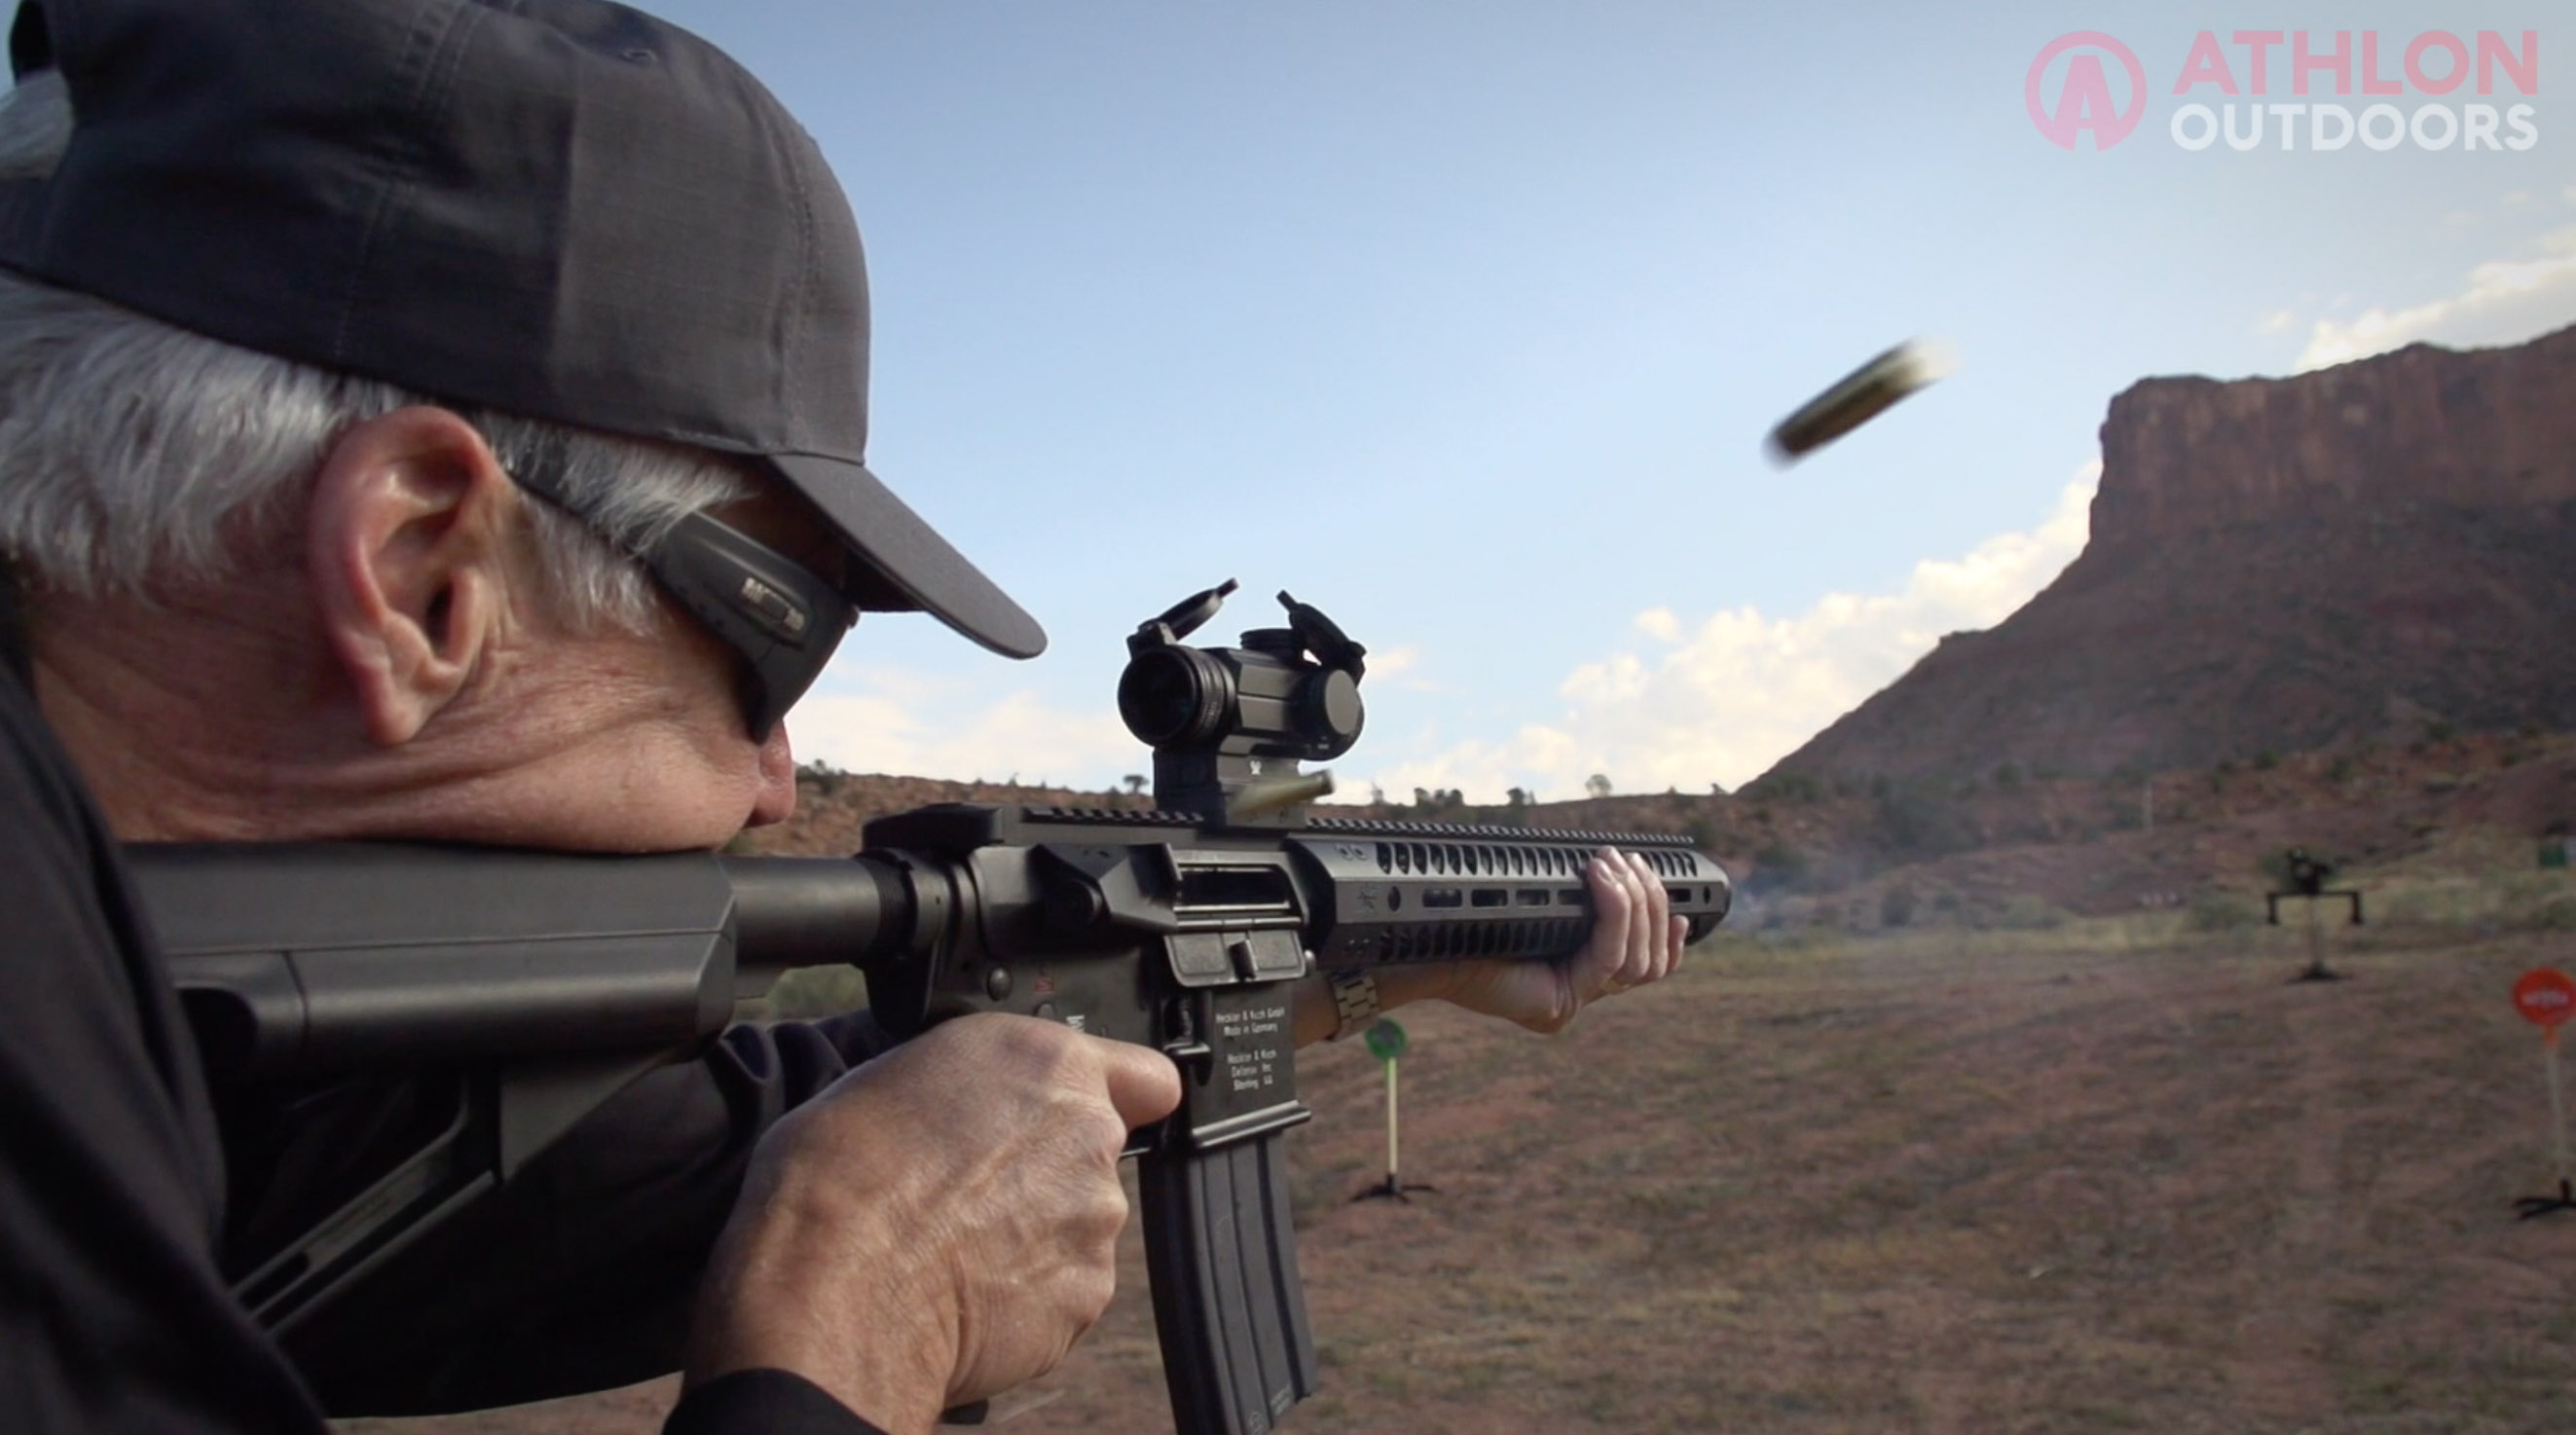 Gemtech 300 BLK Integra Upper Athlon Outdoors Rendezvous range firing